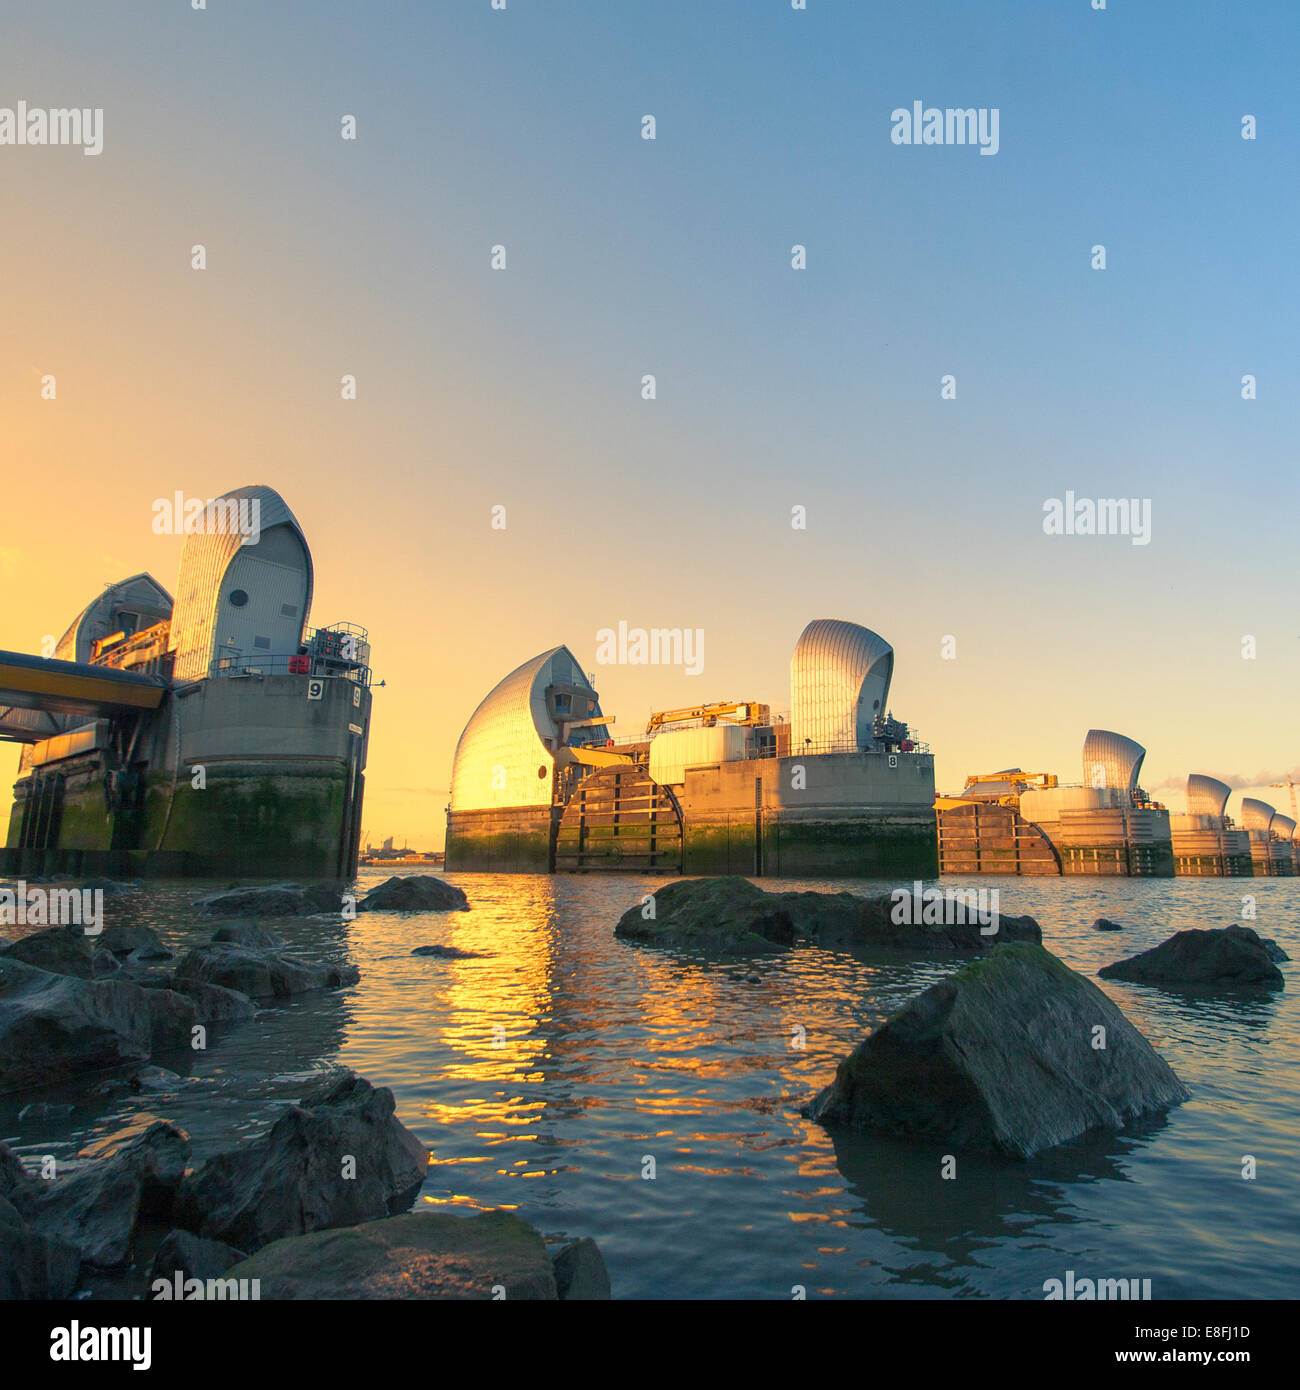 Thames Barrier, London, England, UK - Stock Image